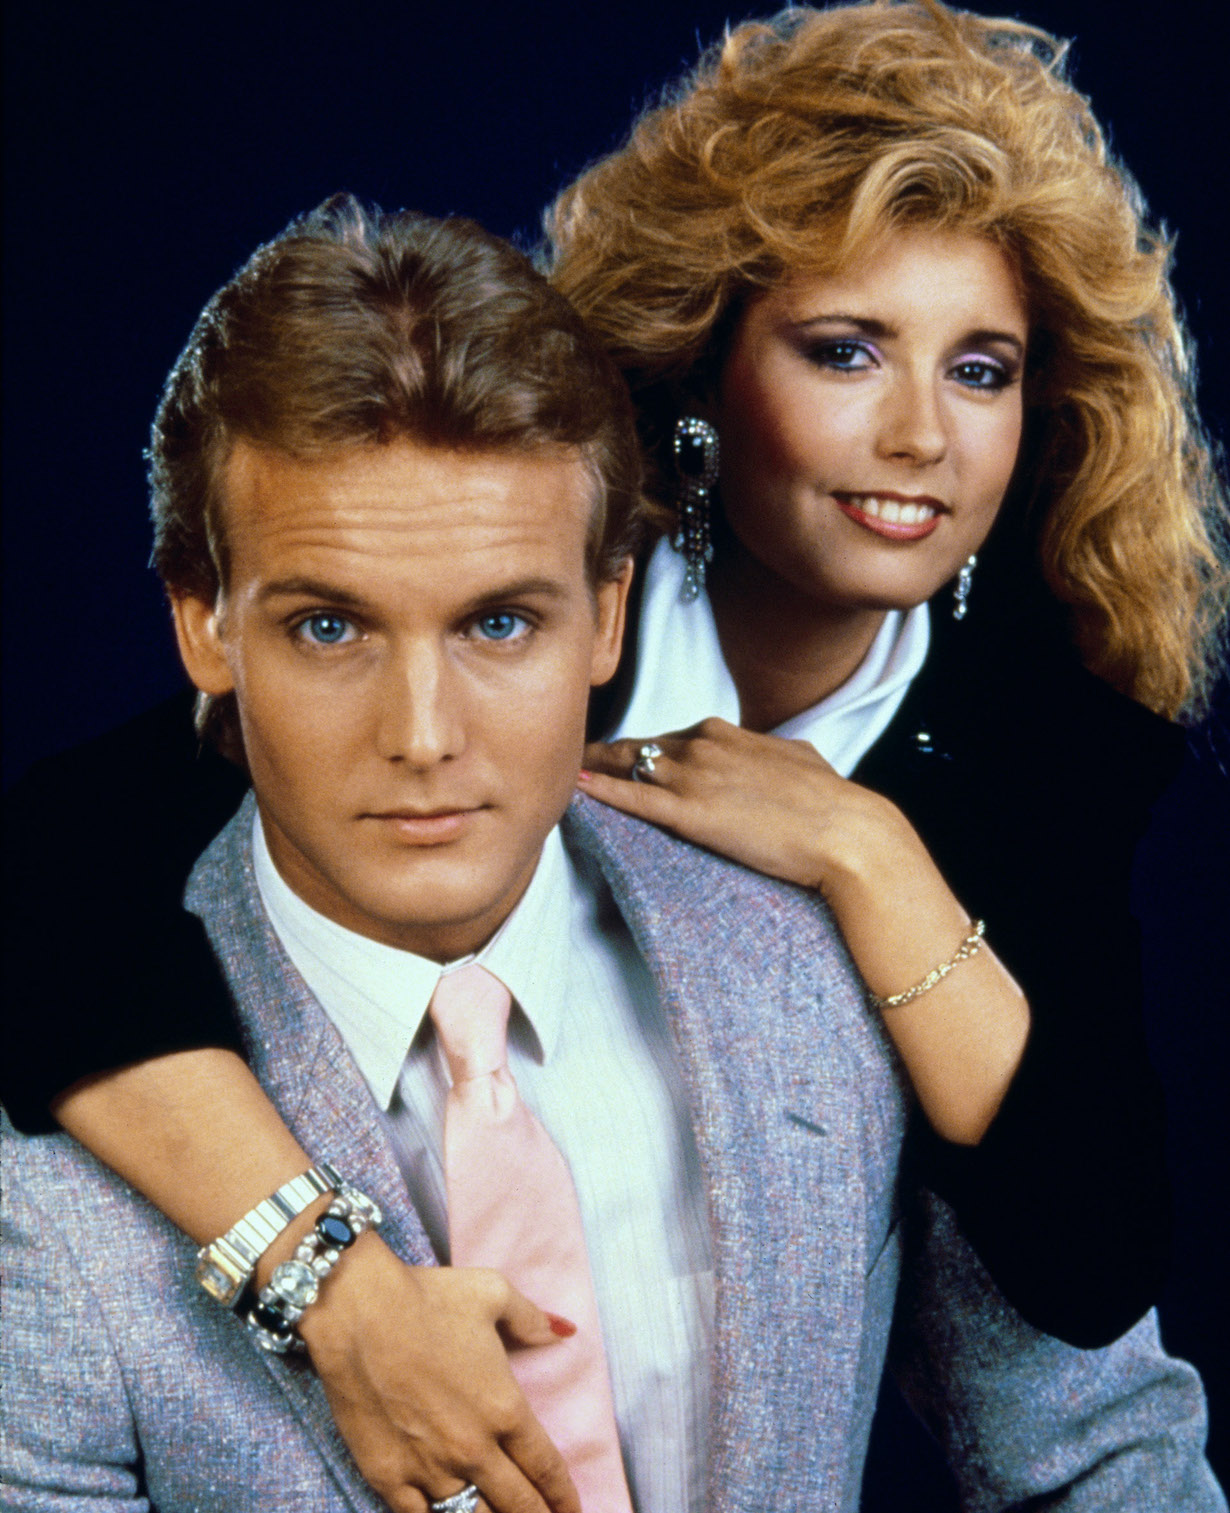 THE YOUNG AND THE RESTLESS, (from left): Doug Davidson, Tracey E. Bregman, (ca. 1987), 1973-. © CBS / courtesy Everett Collection